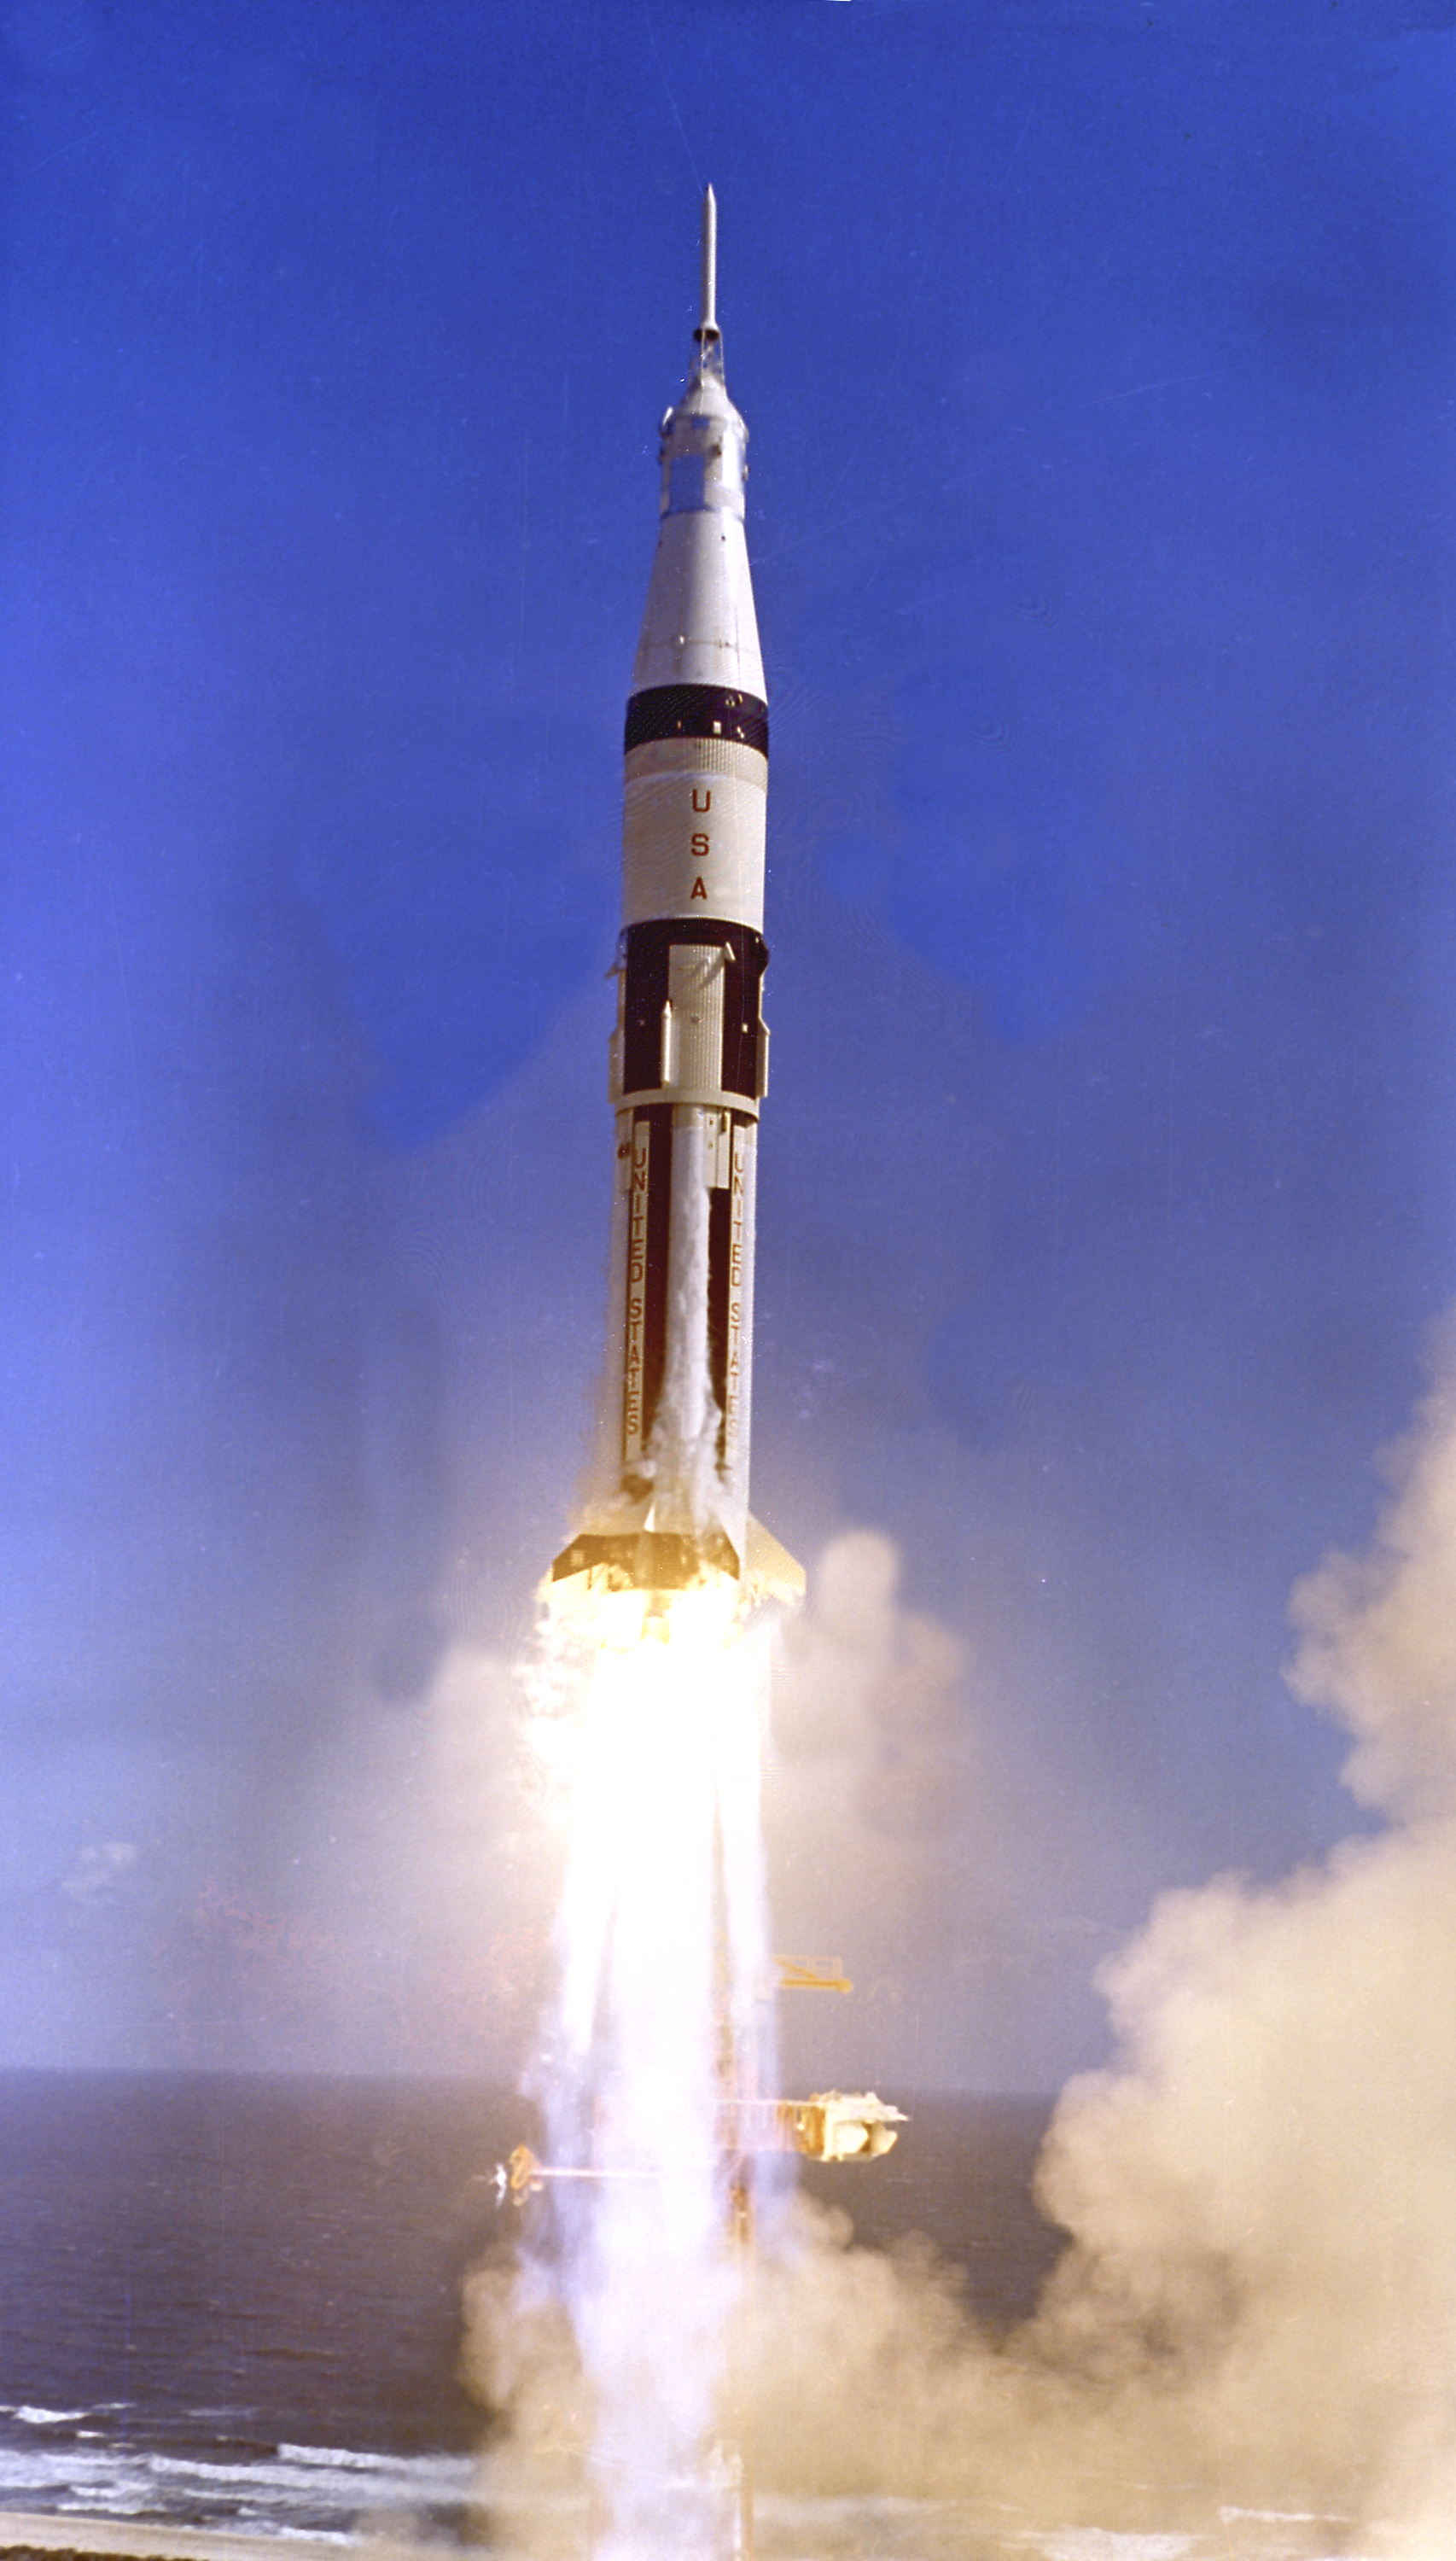 apollo 13 rocket launch - photo #4